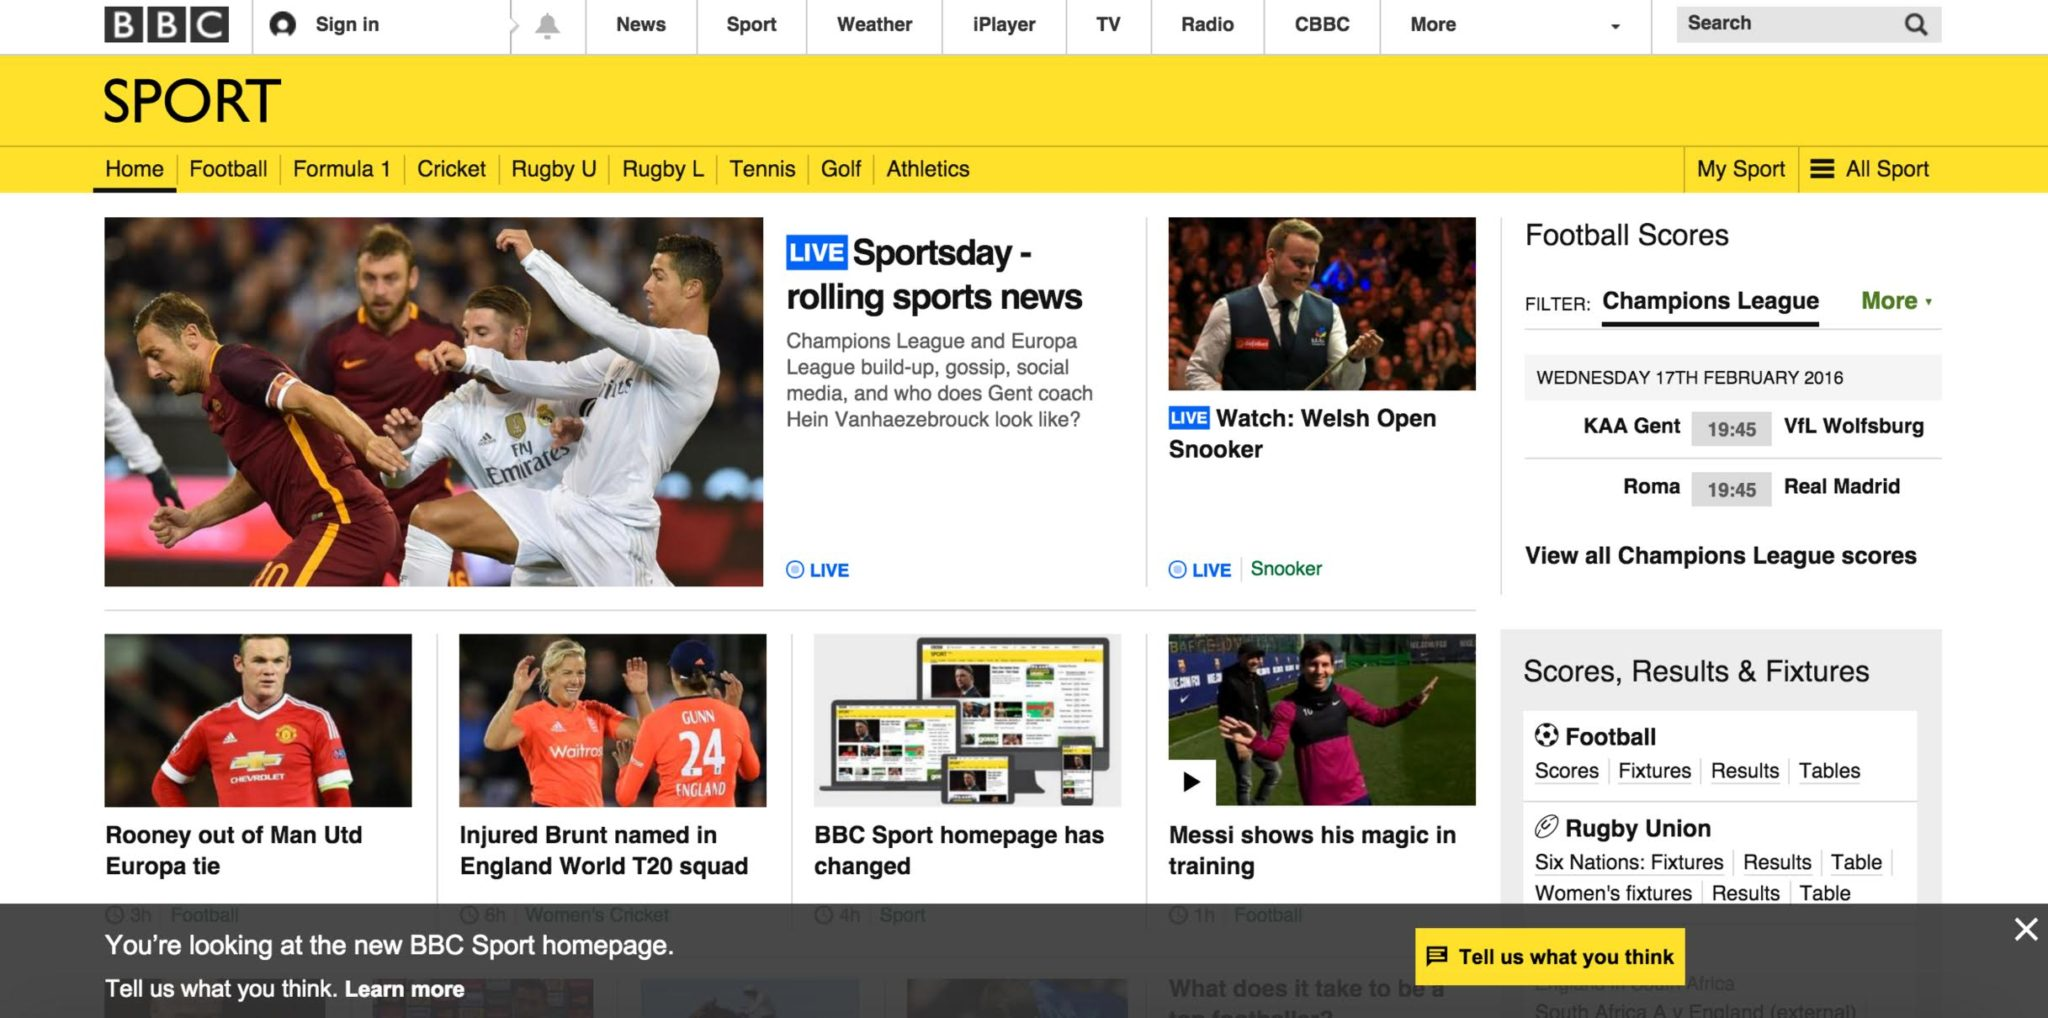 A Sporty New Look For BBC Sport